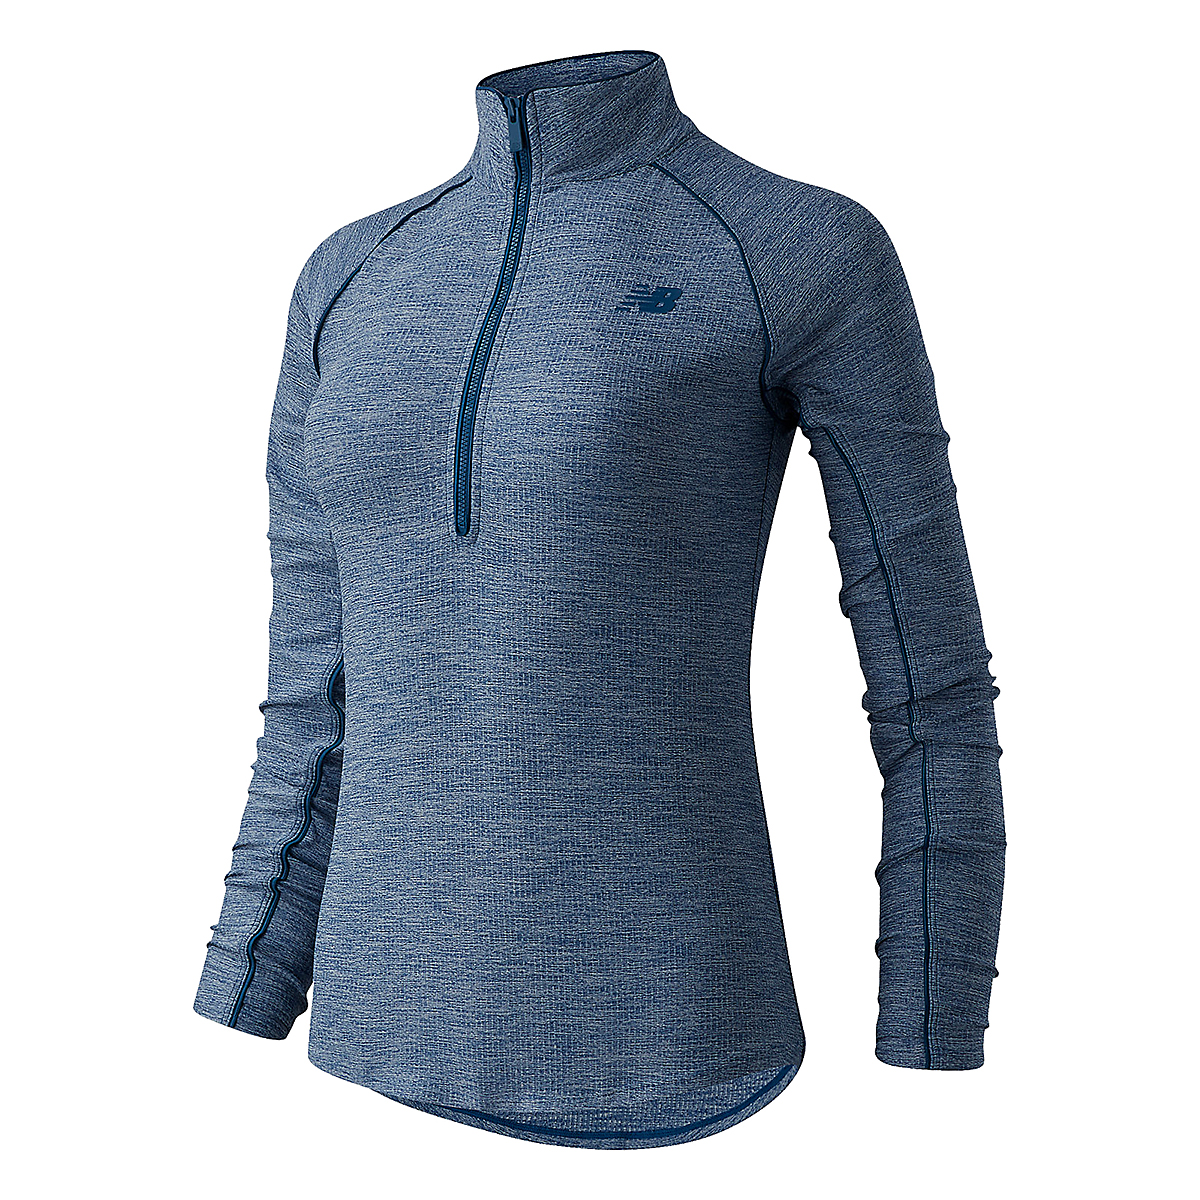 Women's New Balance Transform 1/2 Zip  - Color: Rogue Wave - Size: S, Rogue Wave, large, image 1